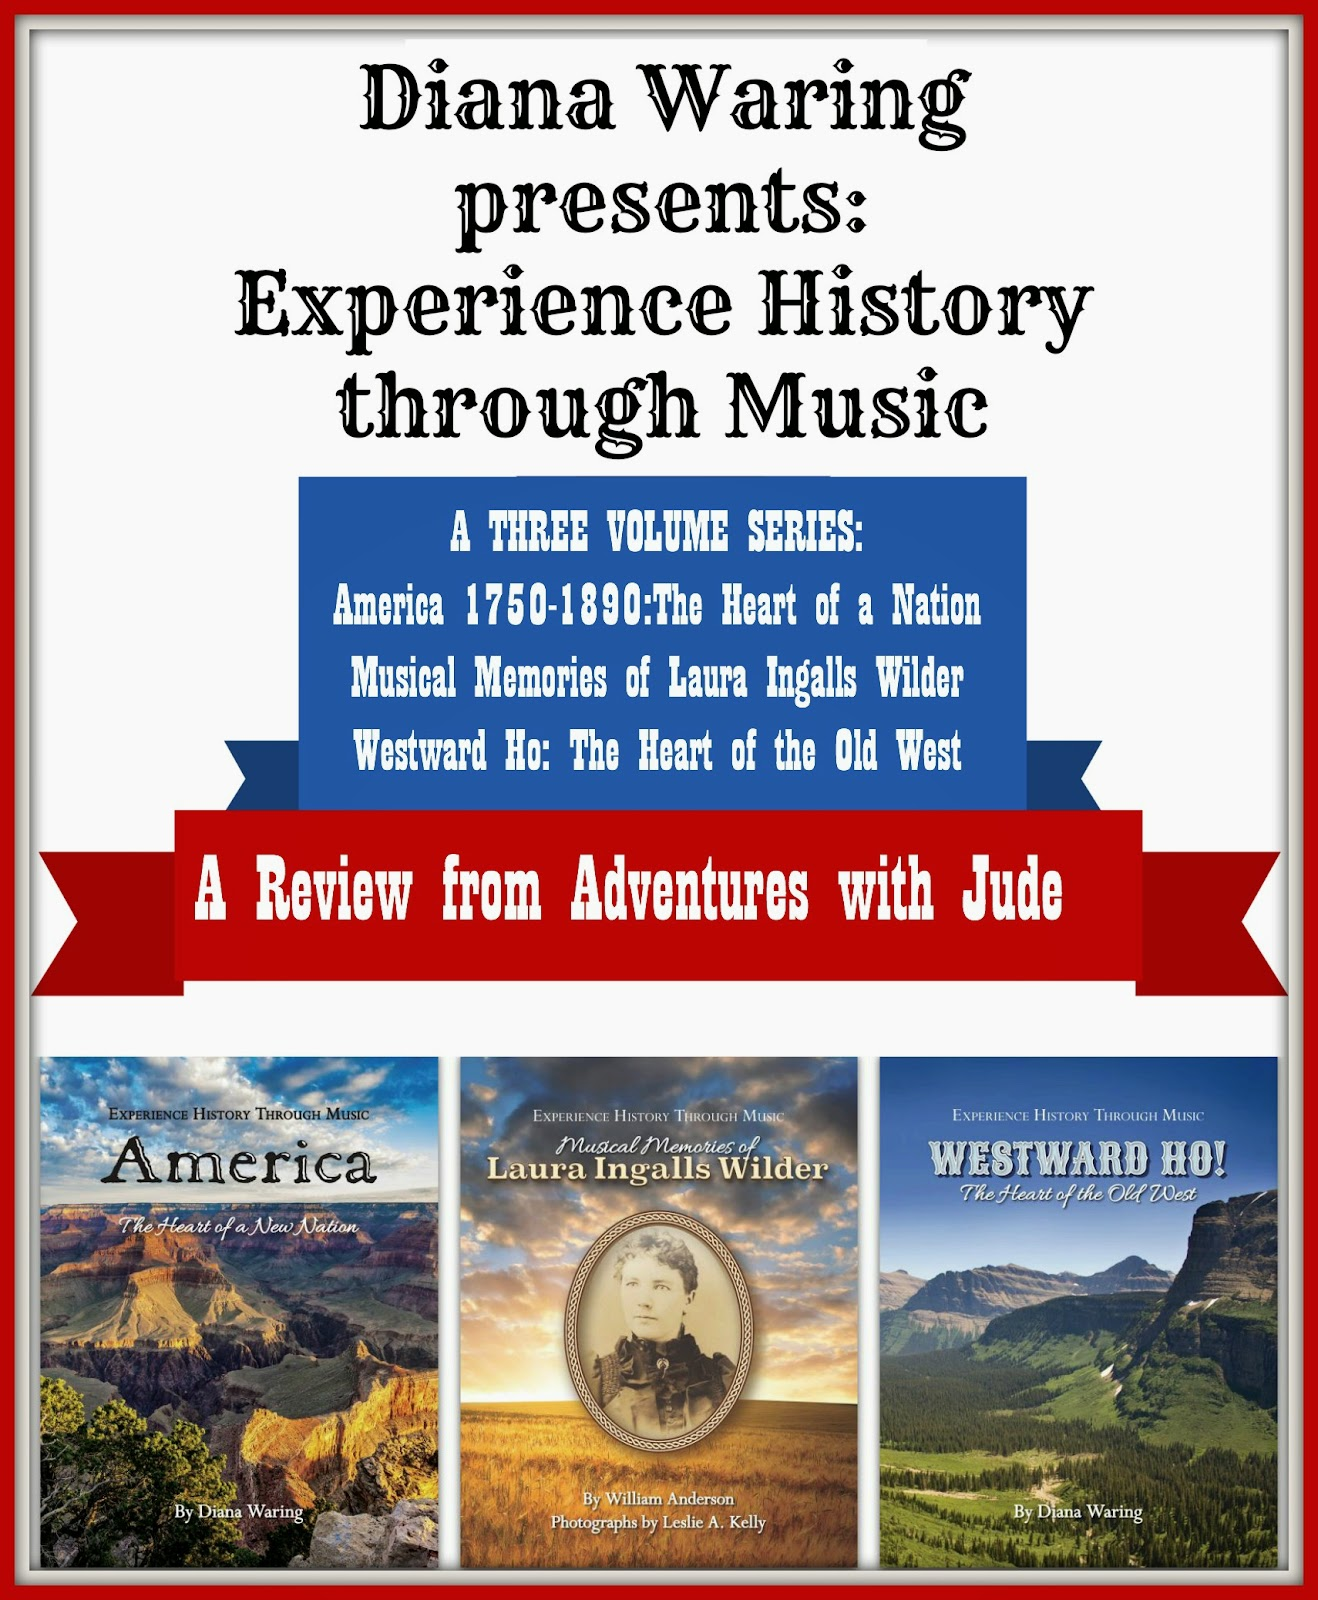 Diana Waring presents: Experience History through Music